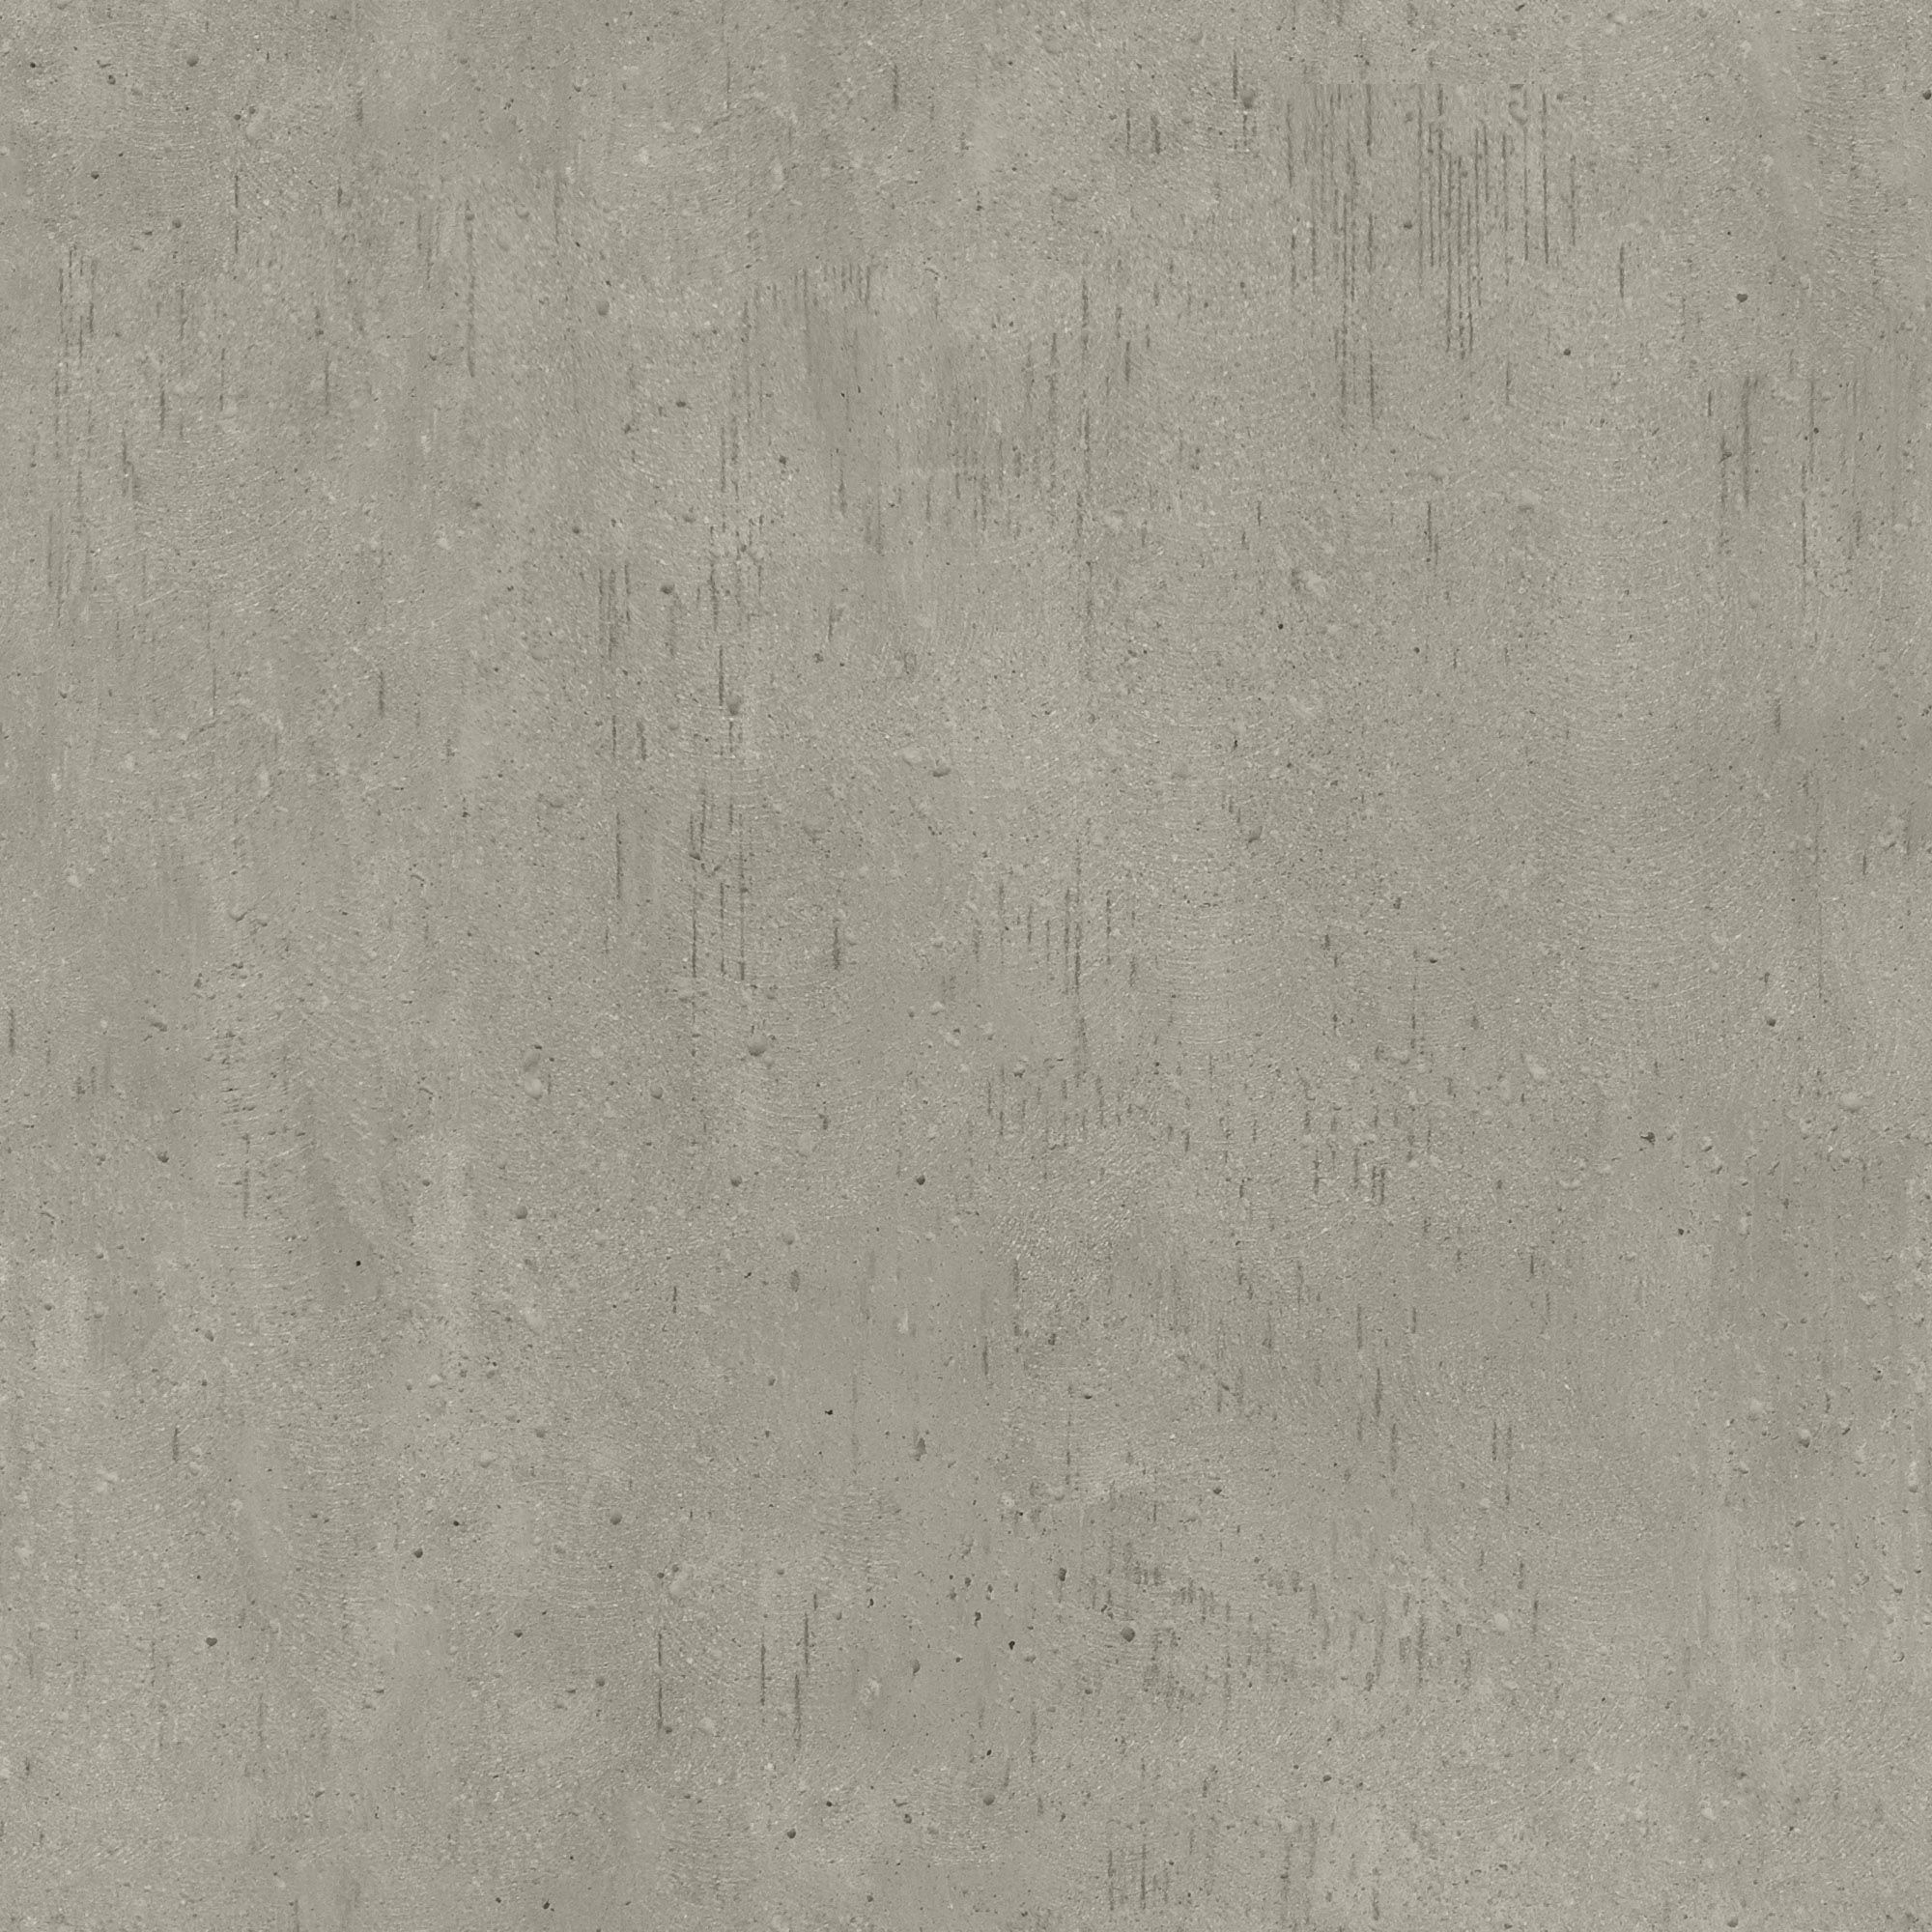 Polished concrete - fireplace | 50 Shades of Gray - Cabin Colors ...